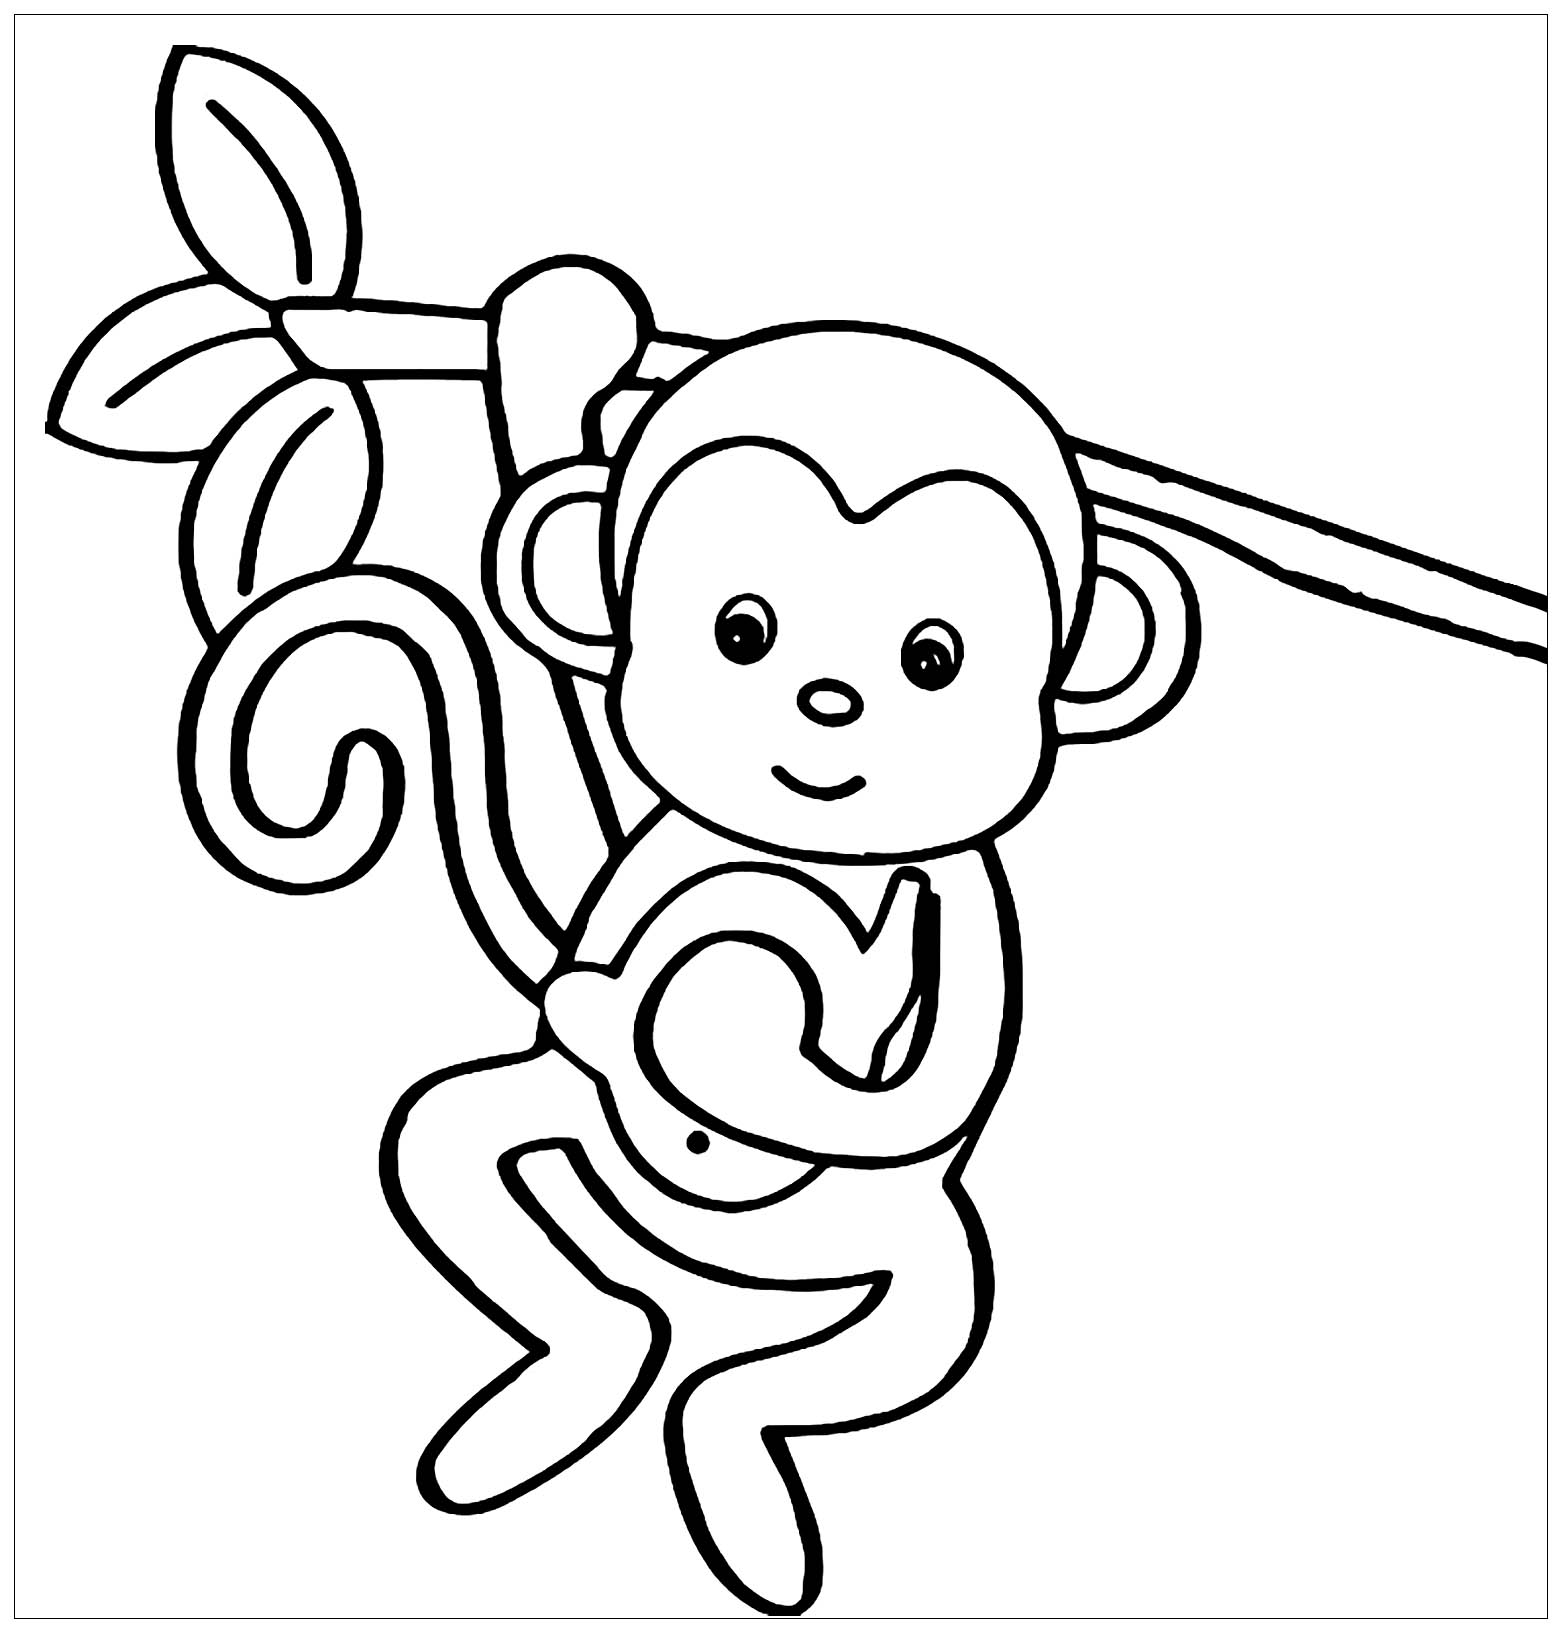 Colouring pictures of monkeys